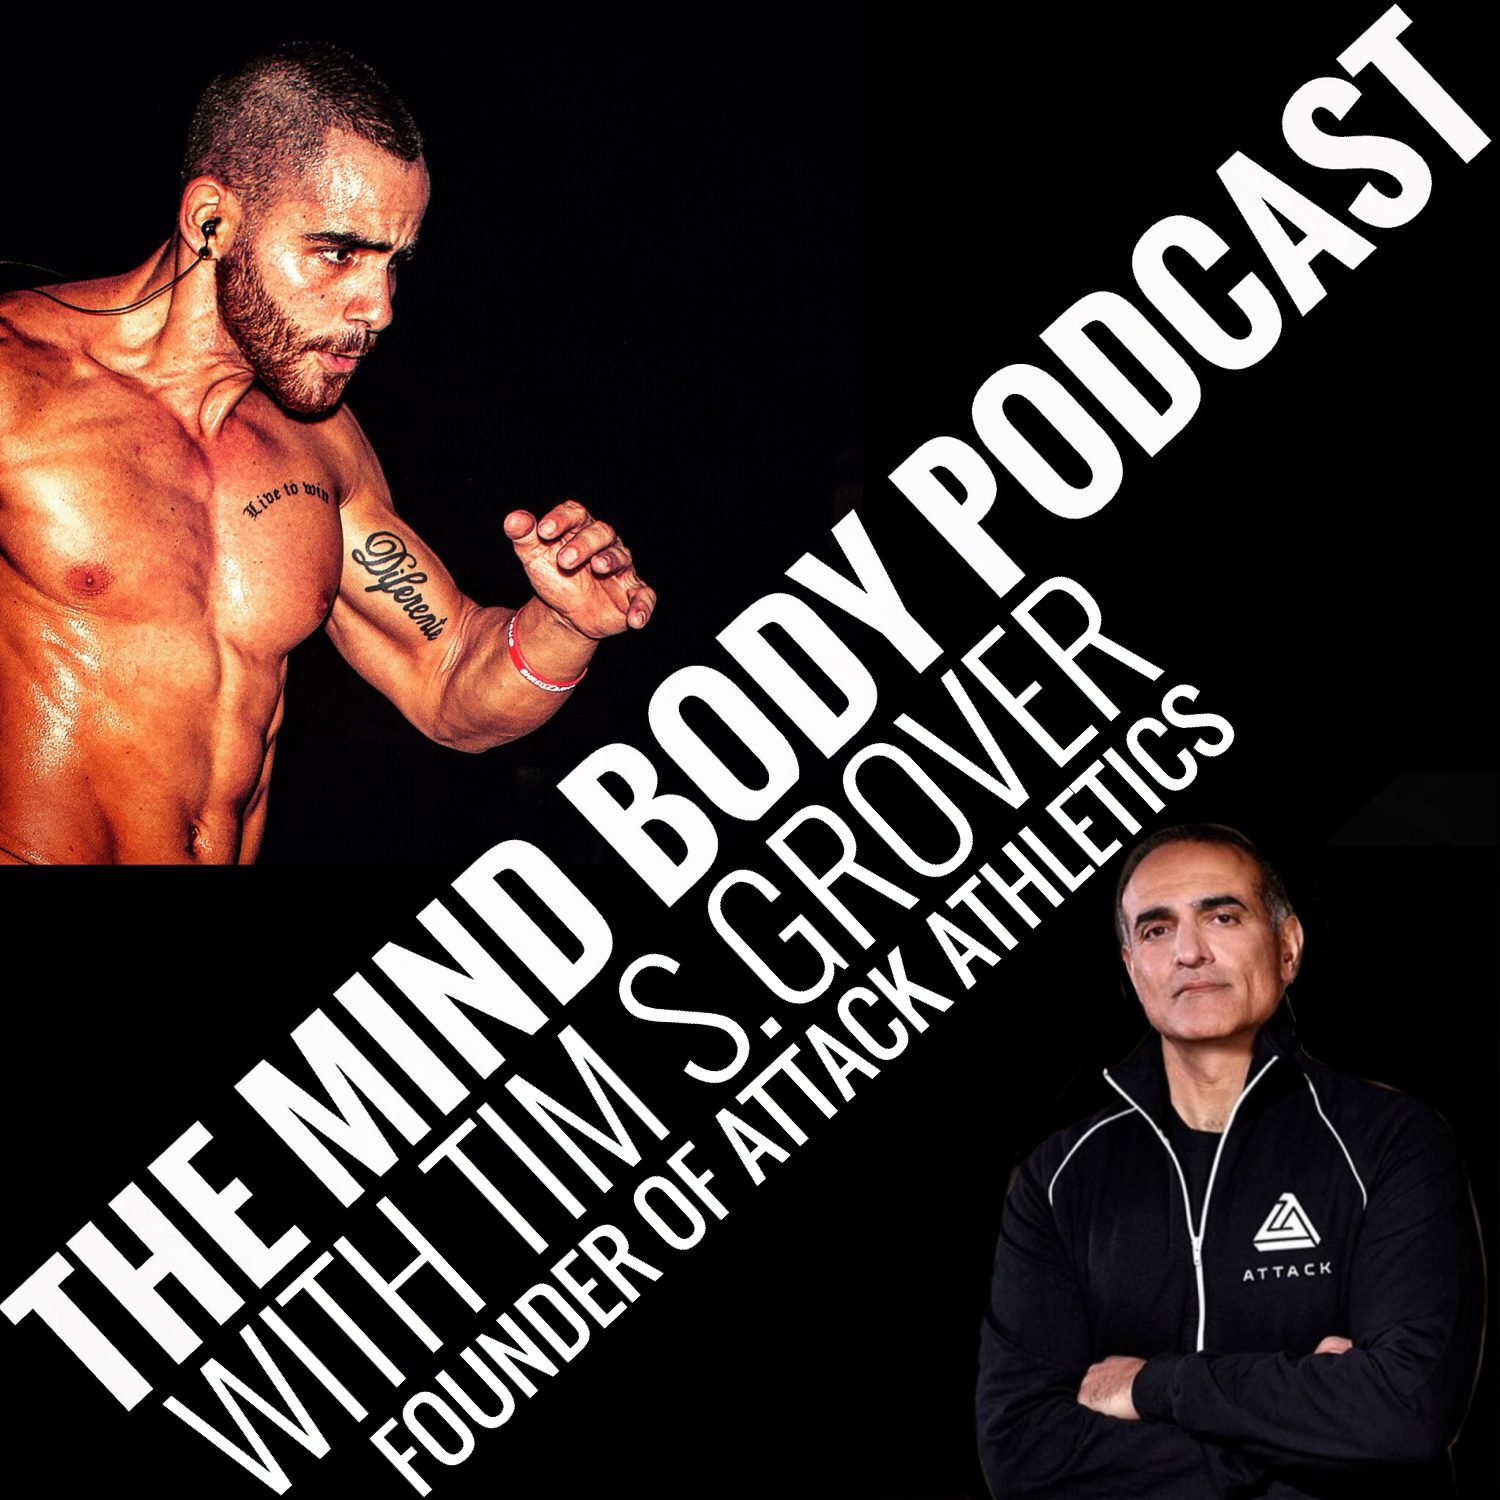 1d865aeb9438 Interview With Tim Grover On Developing The Mindset Of A Champion - Lidor  Dayan